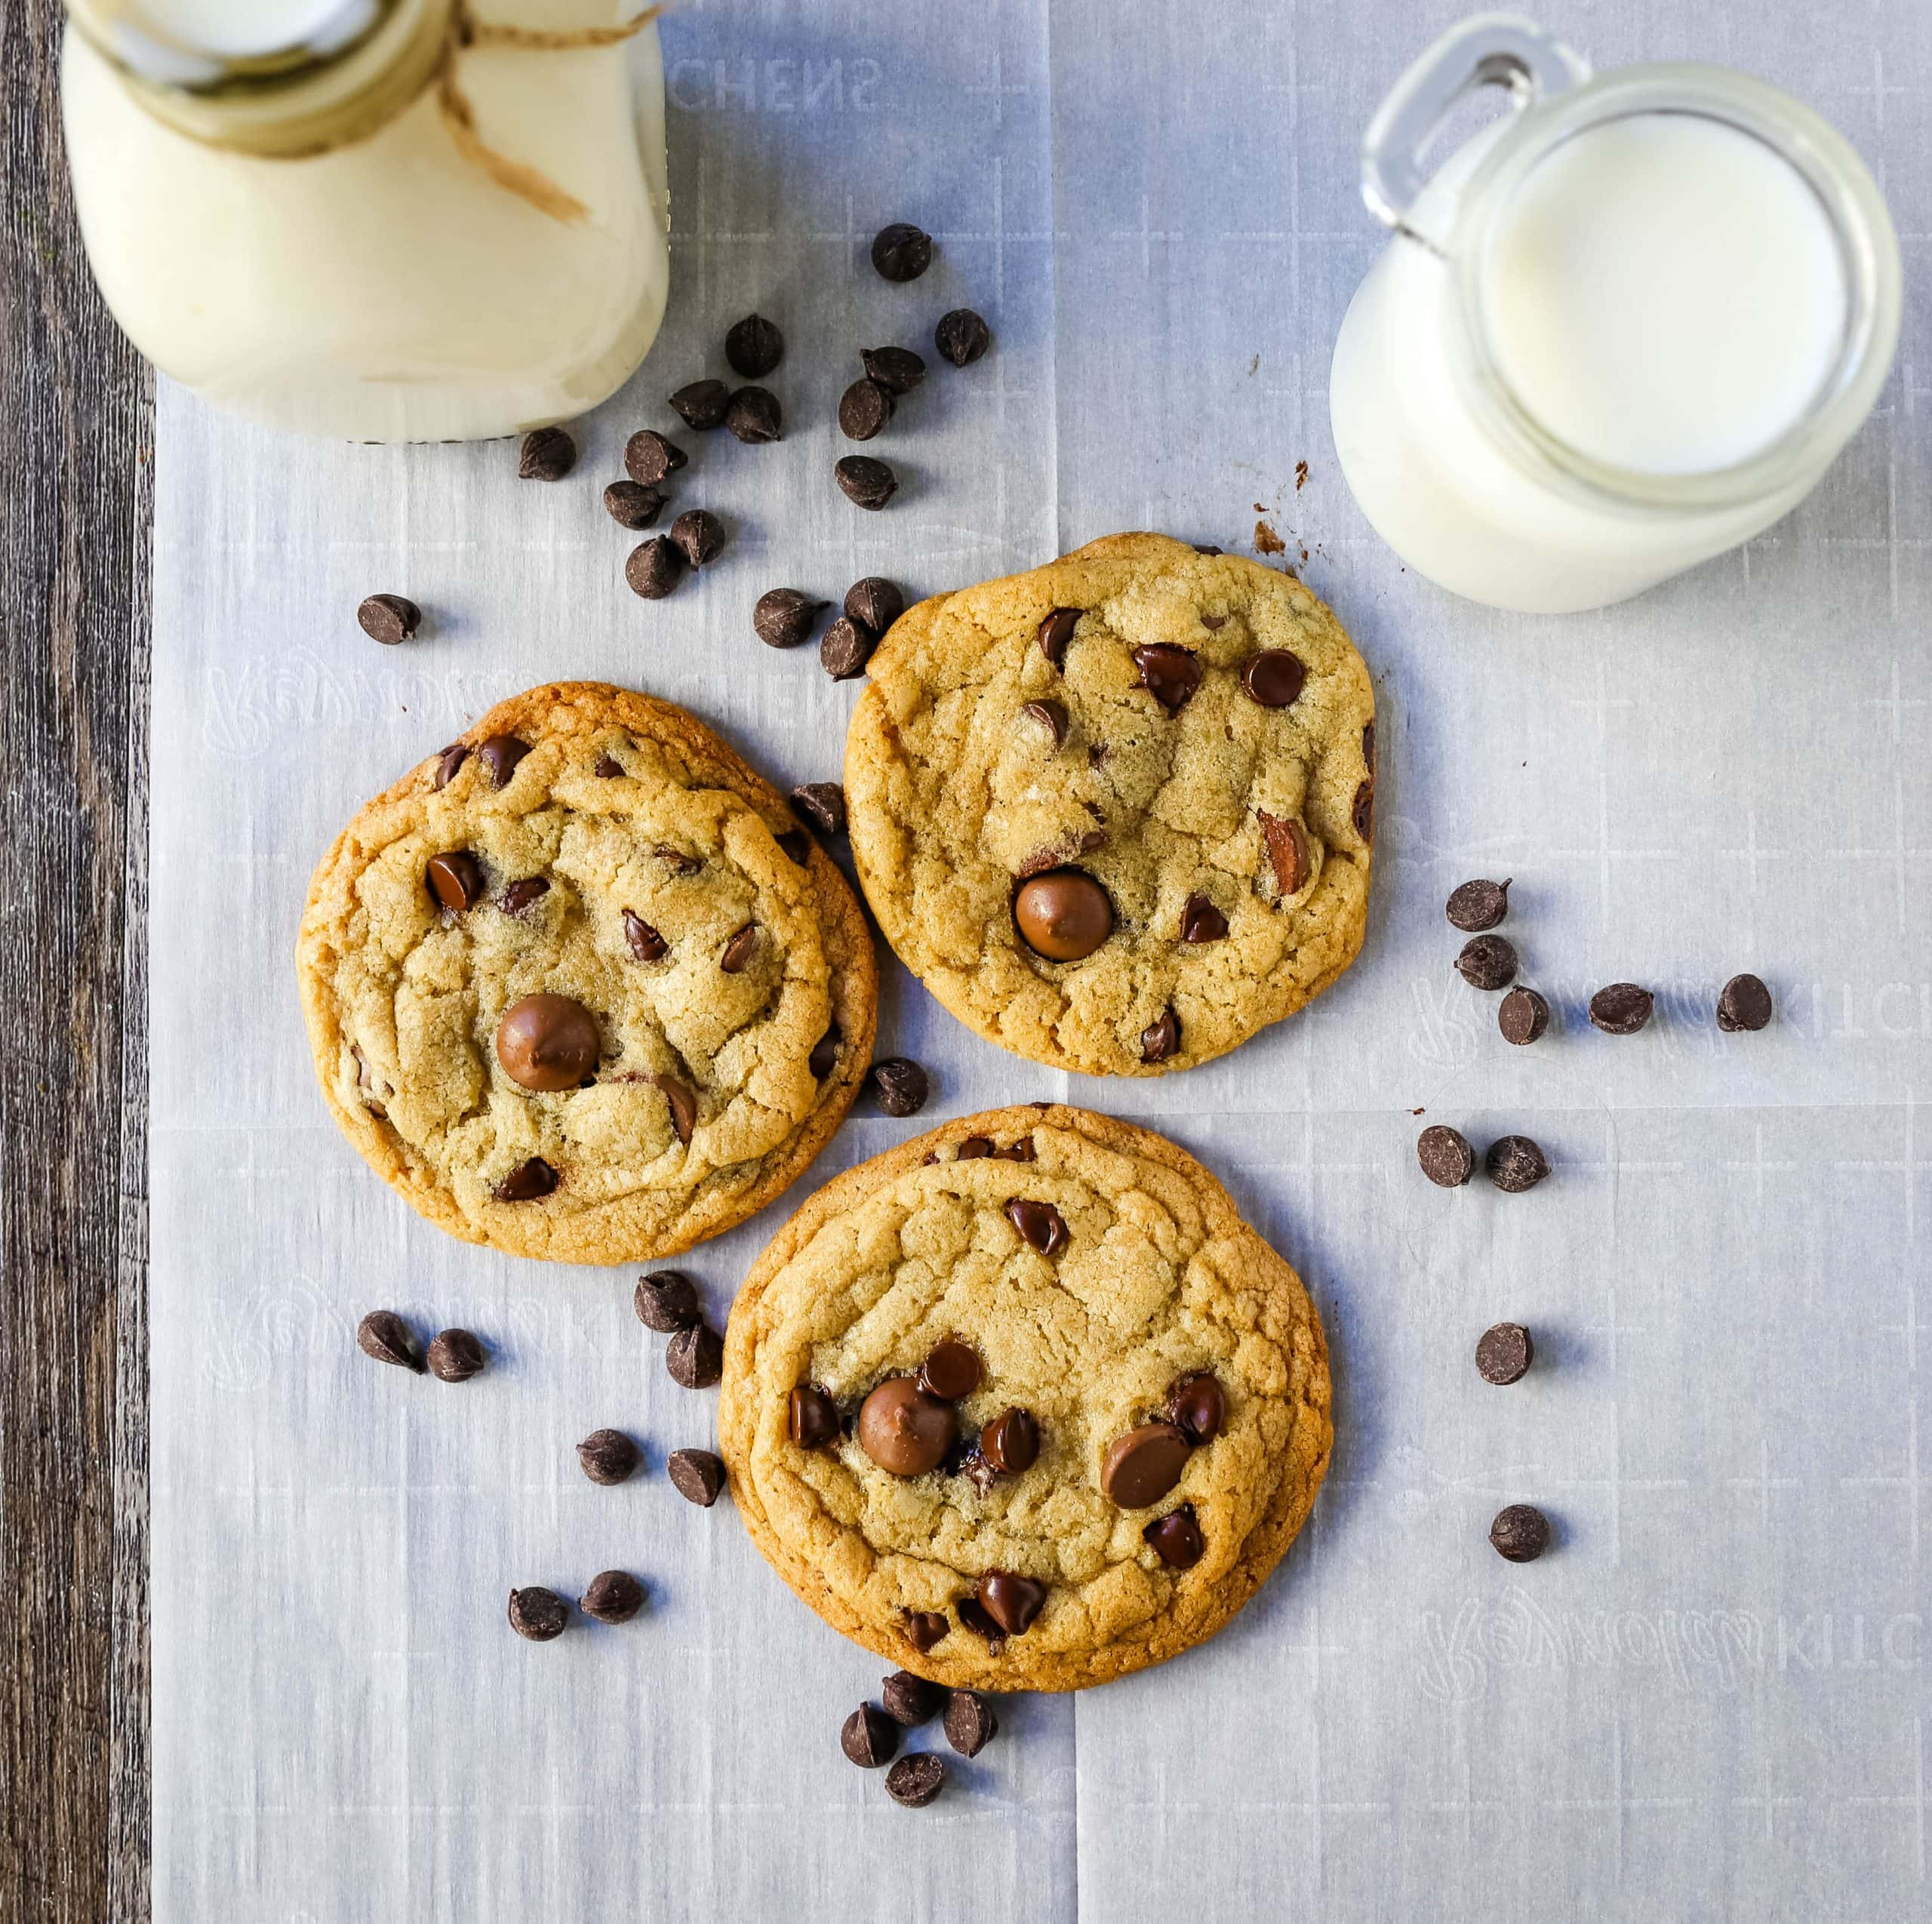 ONE BOWL CHOCOLATE CHIP COOKIE RECIPE An easy one bowl cookie recipe that creates a chewy chocolate chip cookie with crisp buttery edges.  www.modernhoney.com #cookie #cookies #chocolatechipcookie #chocolatechipcookies